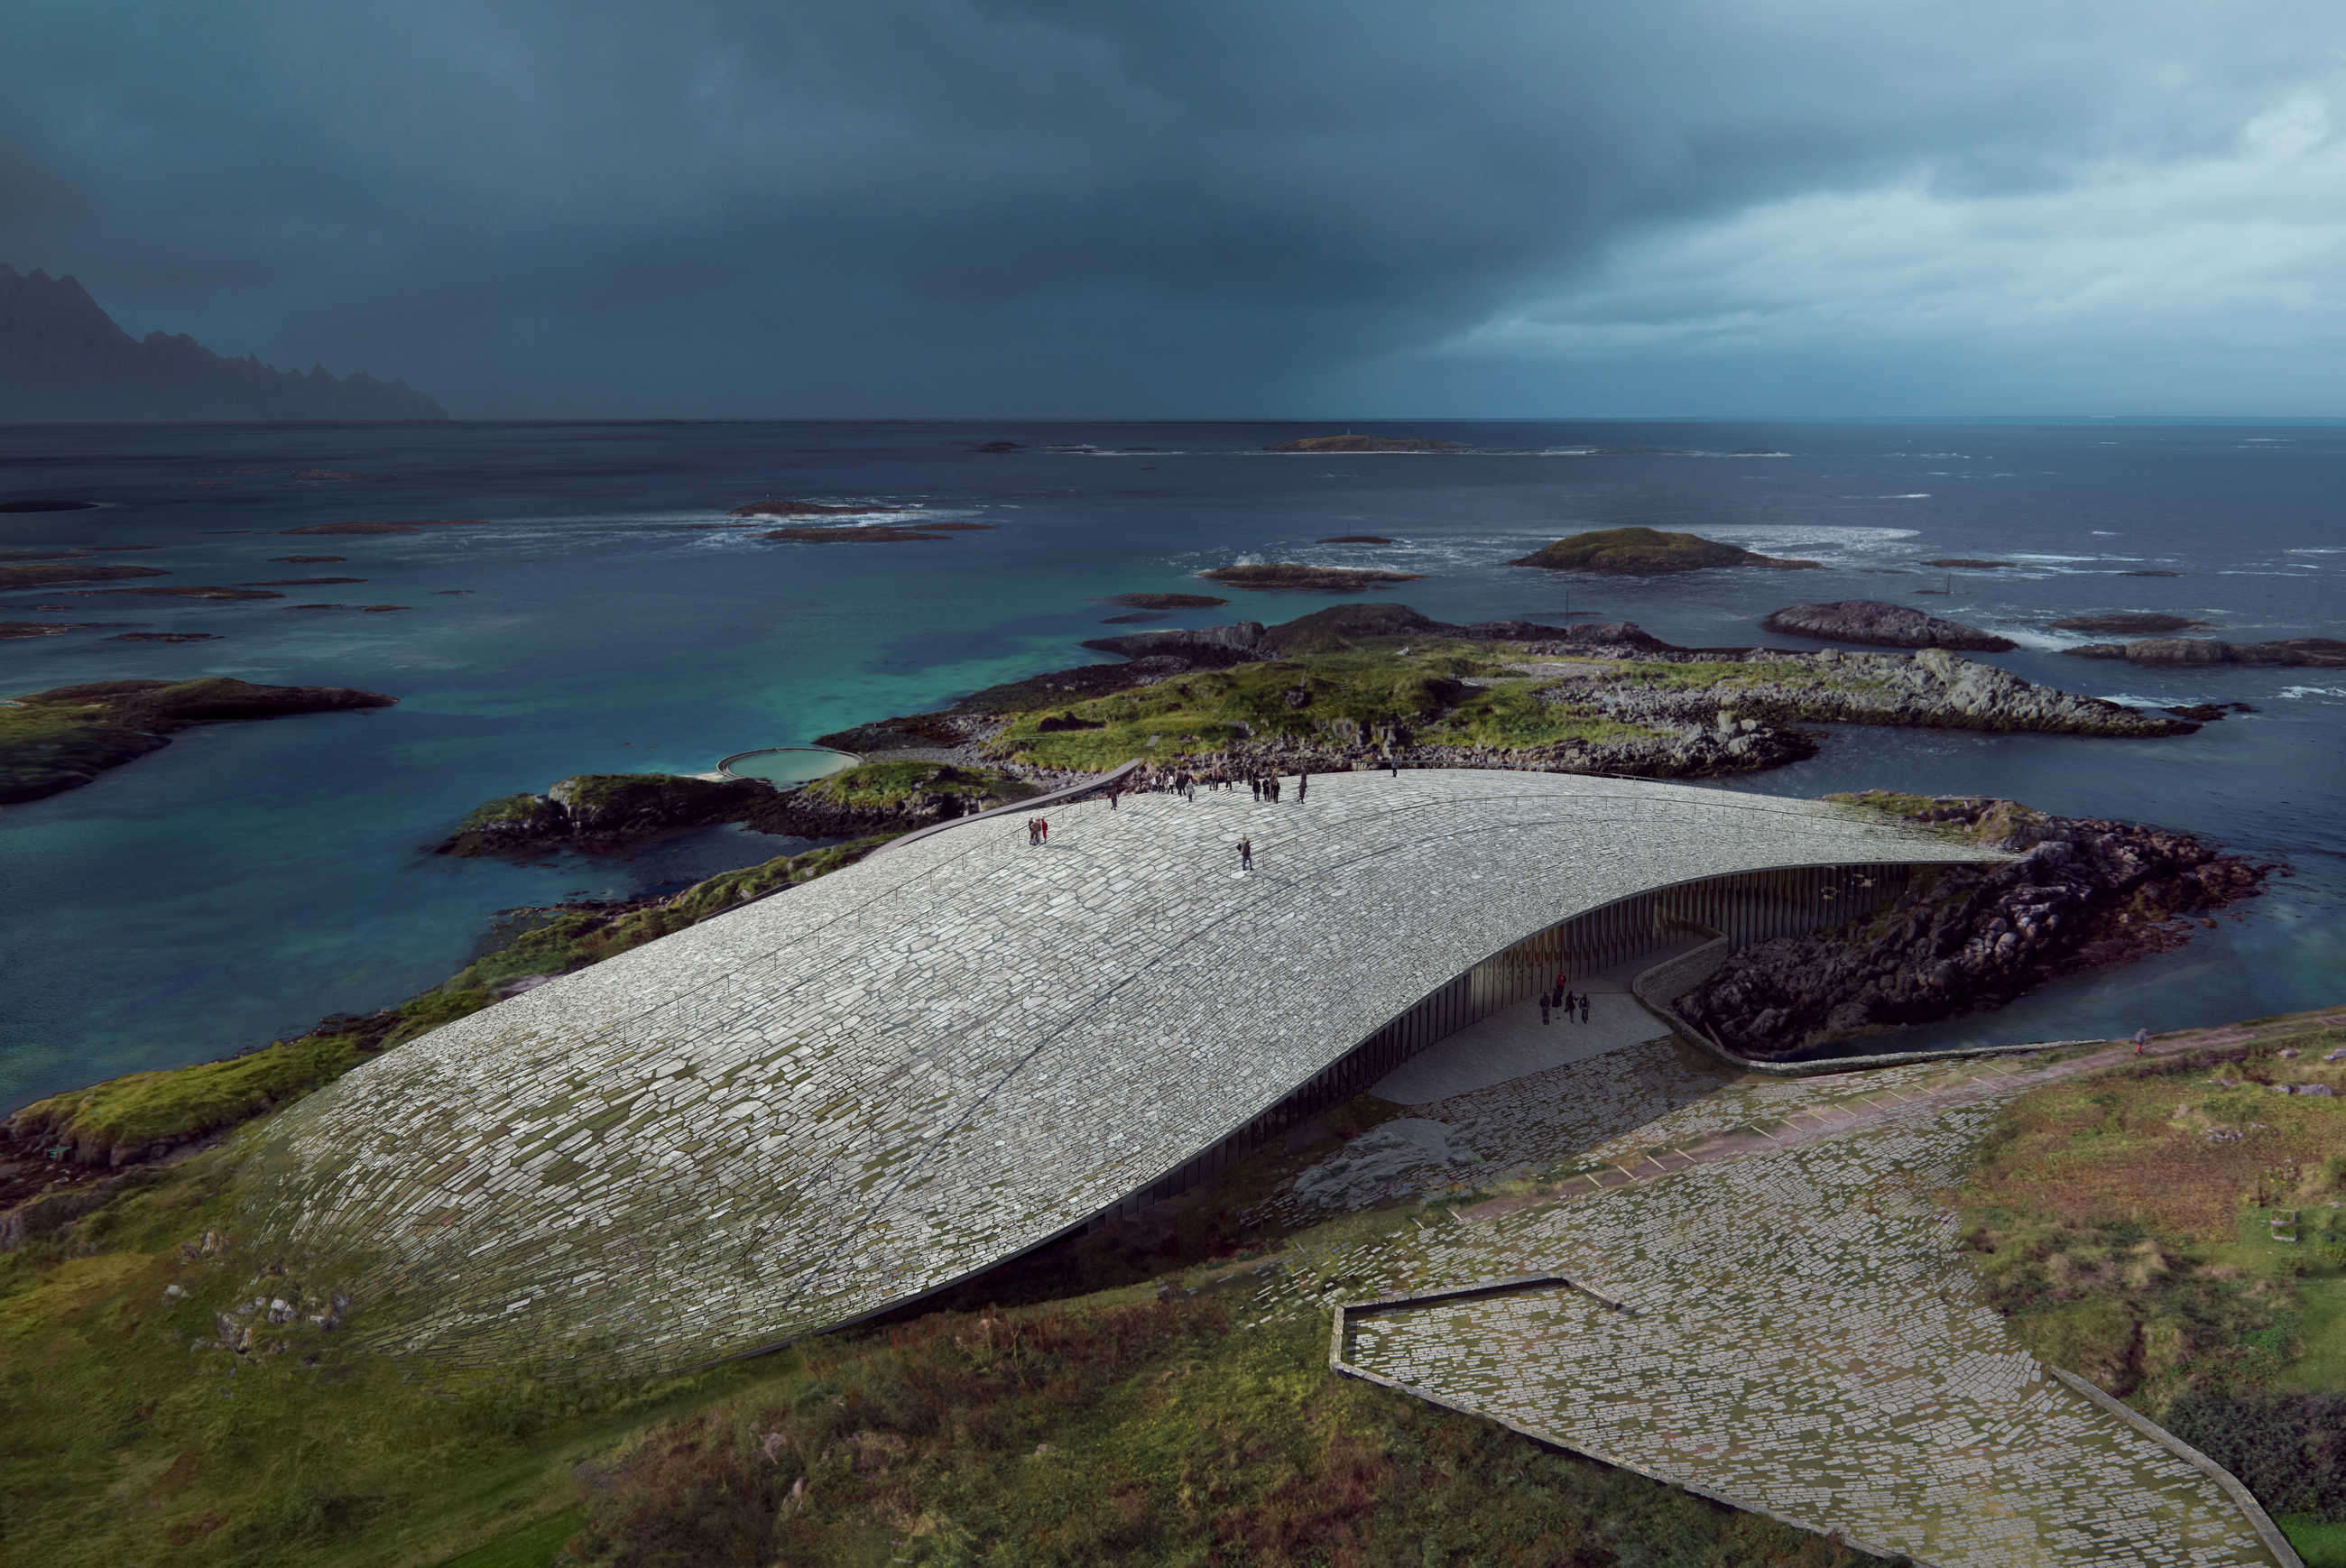 The Whale of Norway will attract visitors starting from 2022